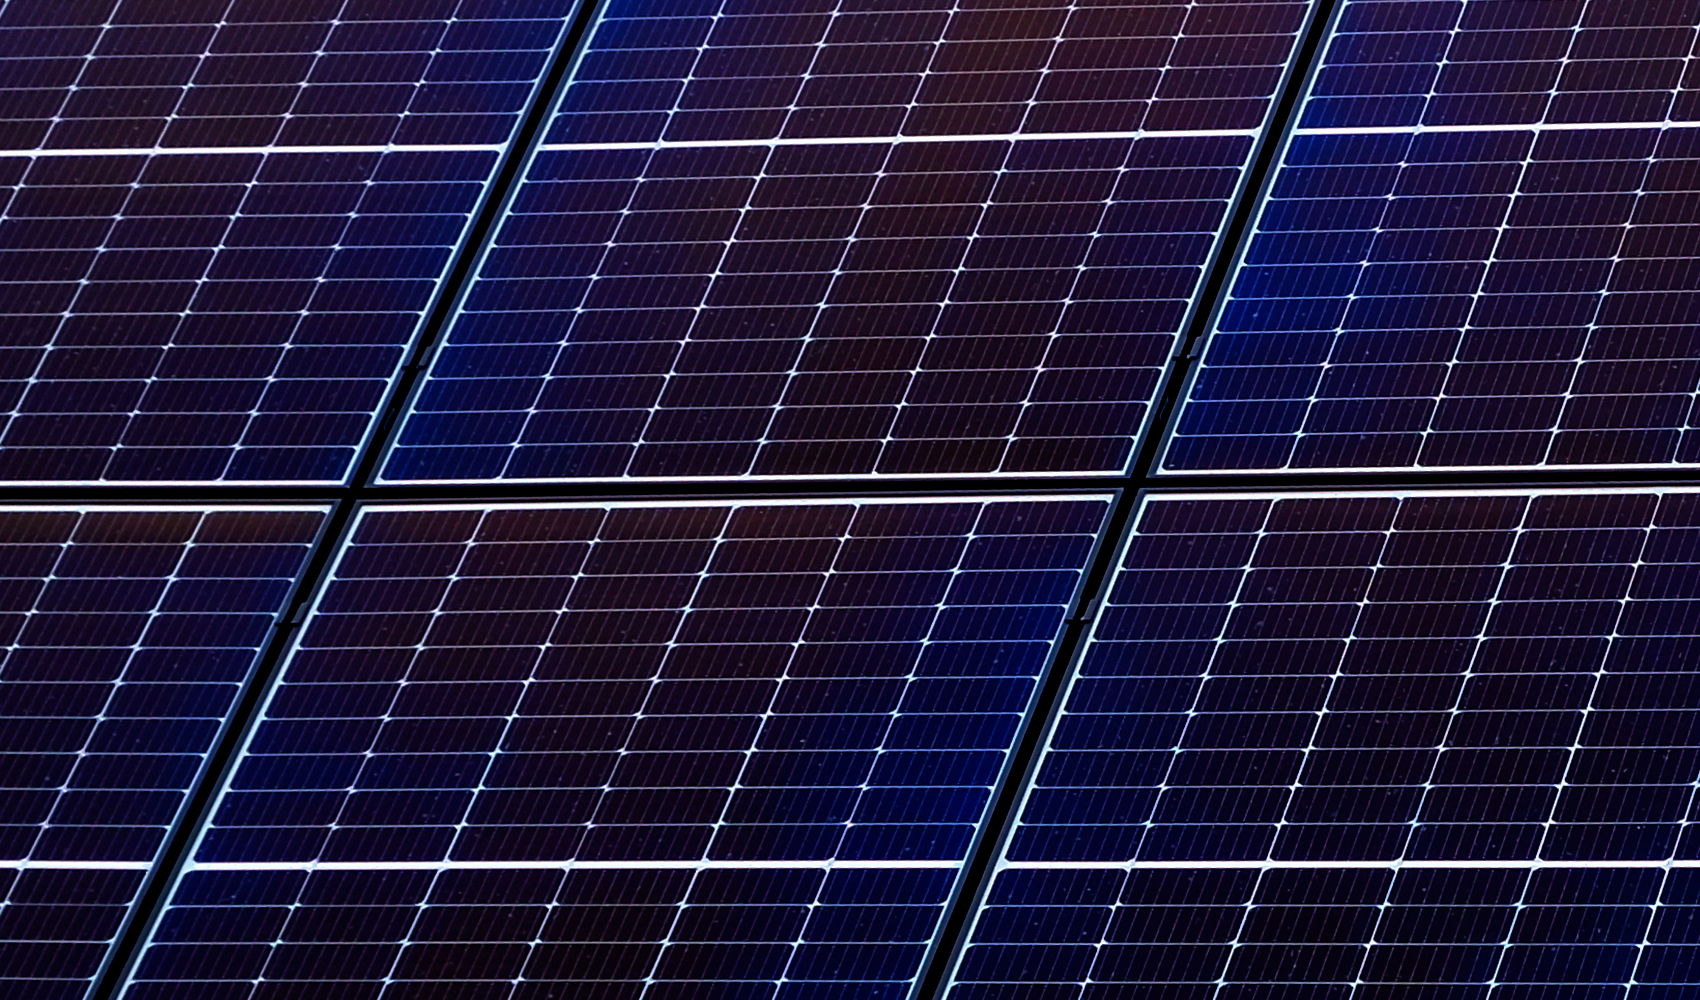 Zoom to a solar panel on a roof.